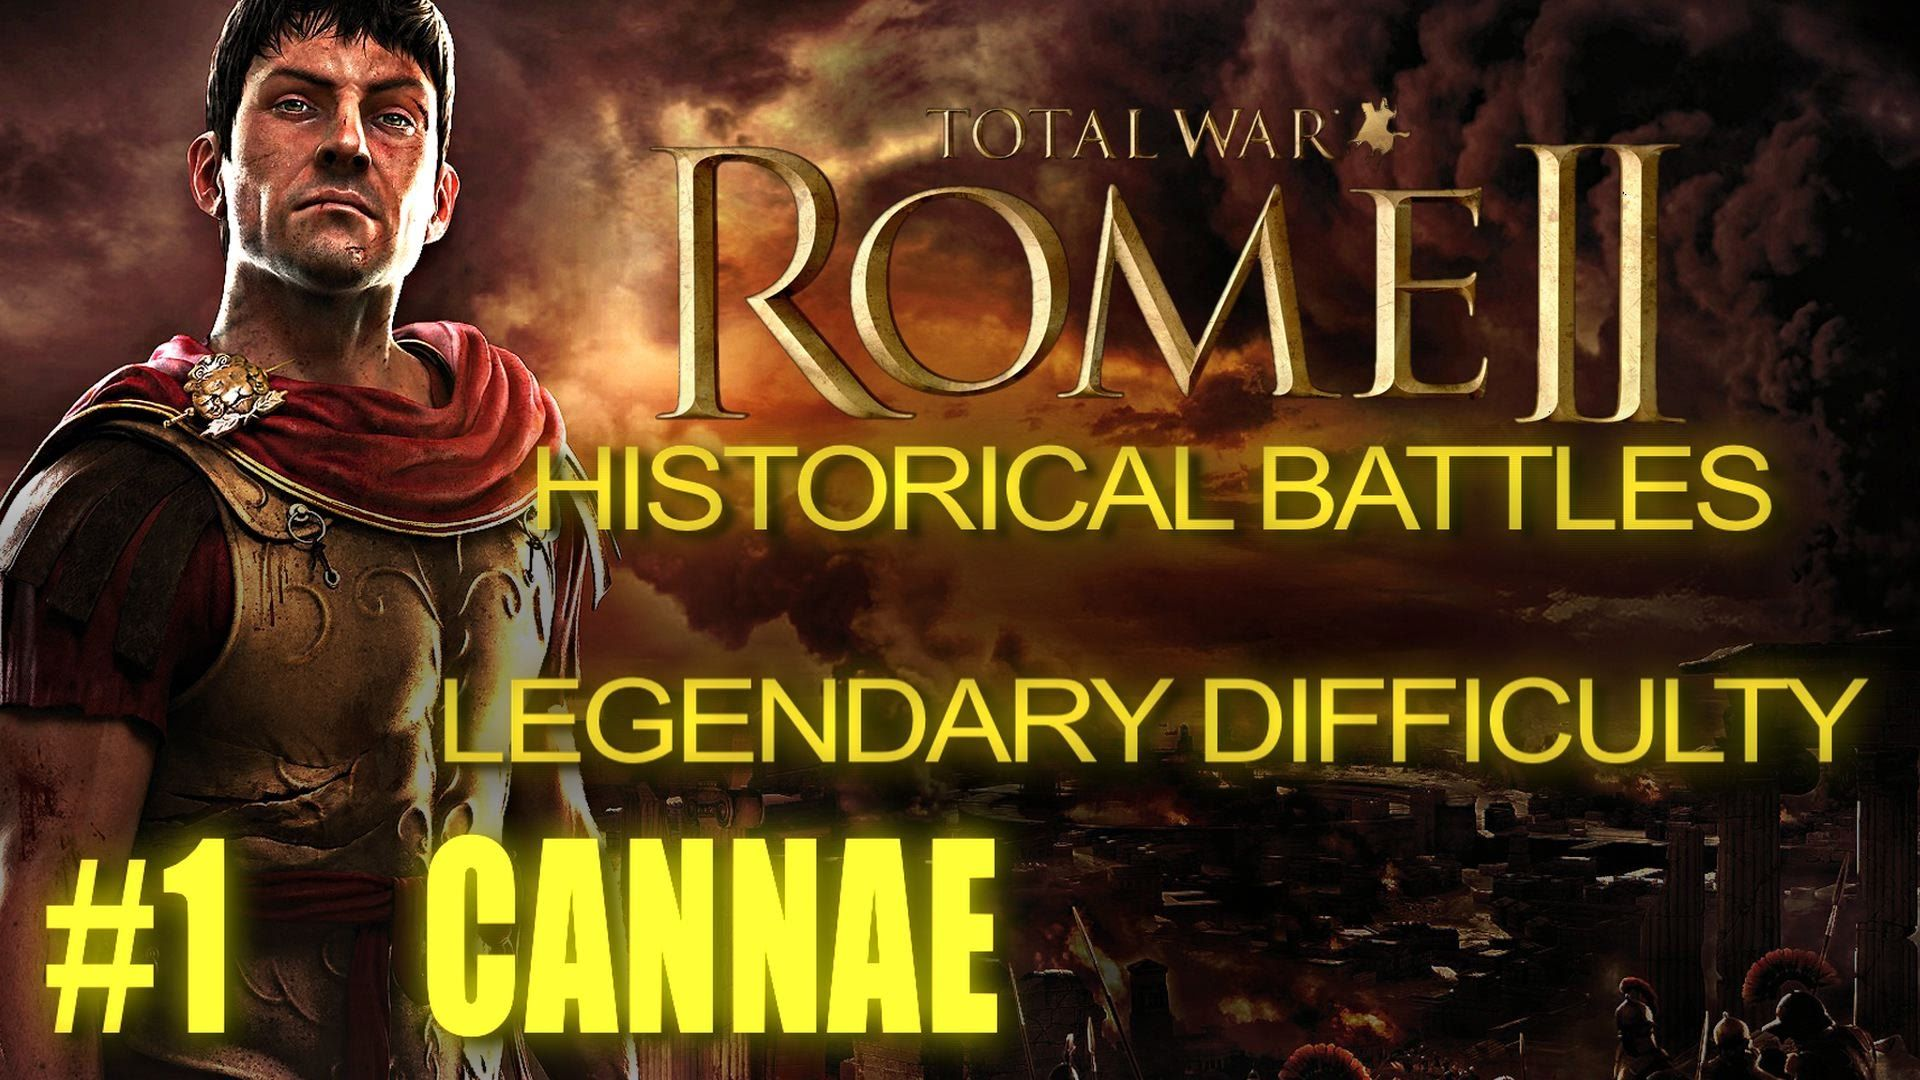 legend of total war has decided to re do all rome ii historical